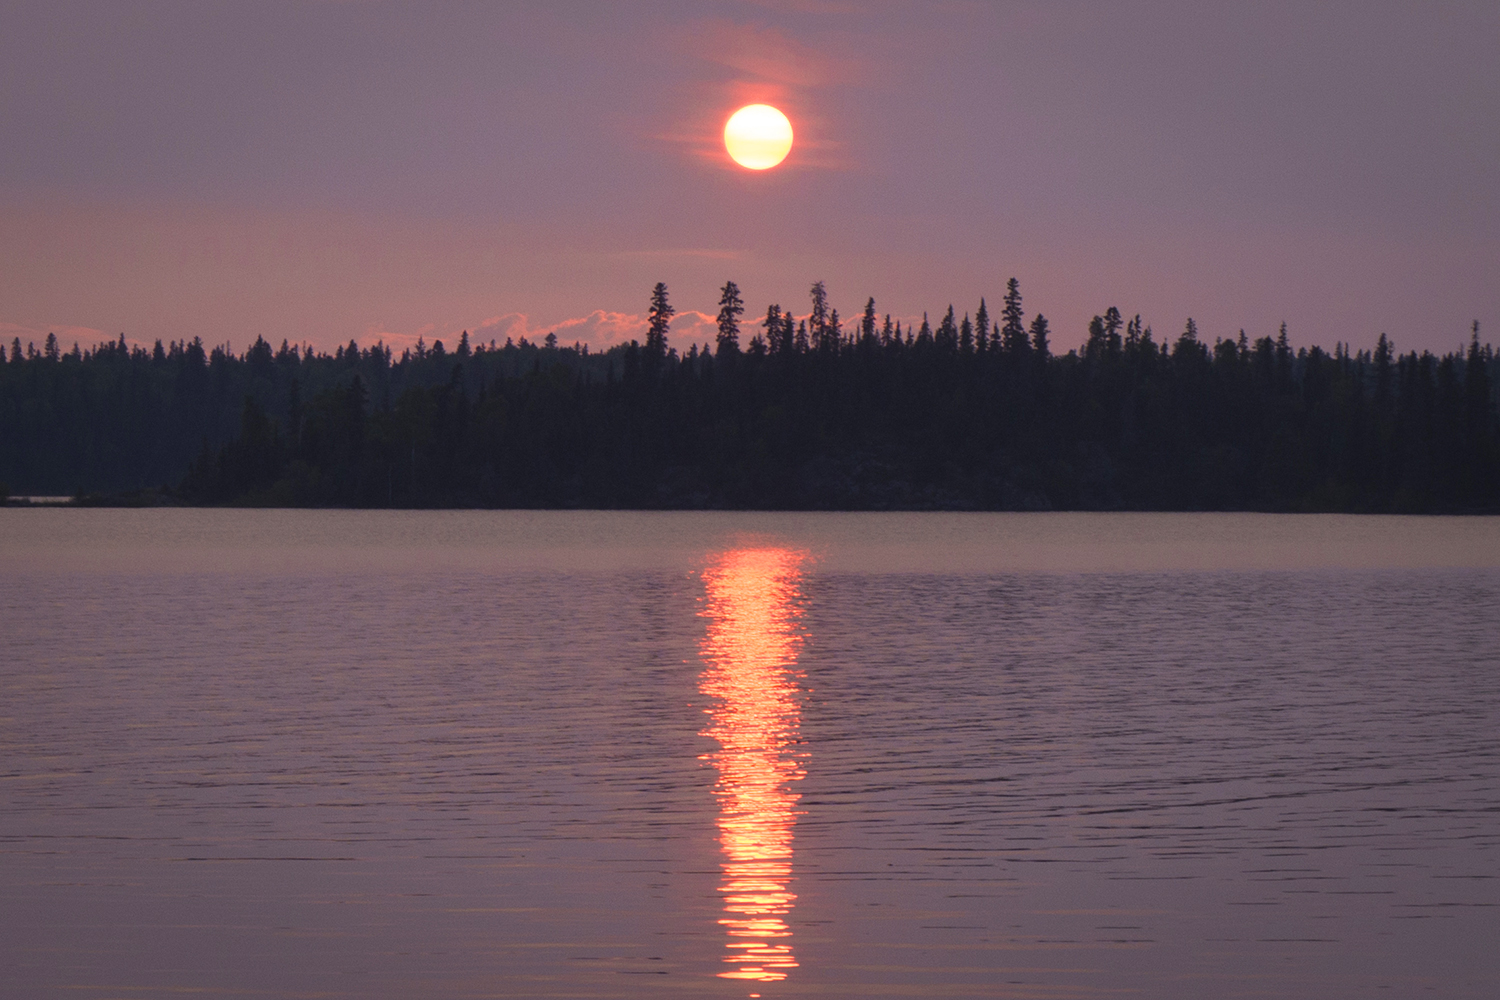 Sunset on the western shore of Missi Island (Goodson)